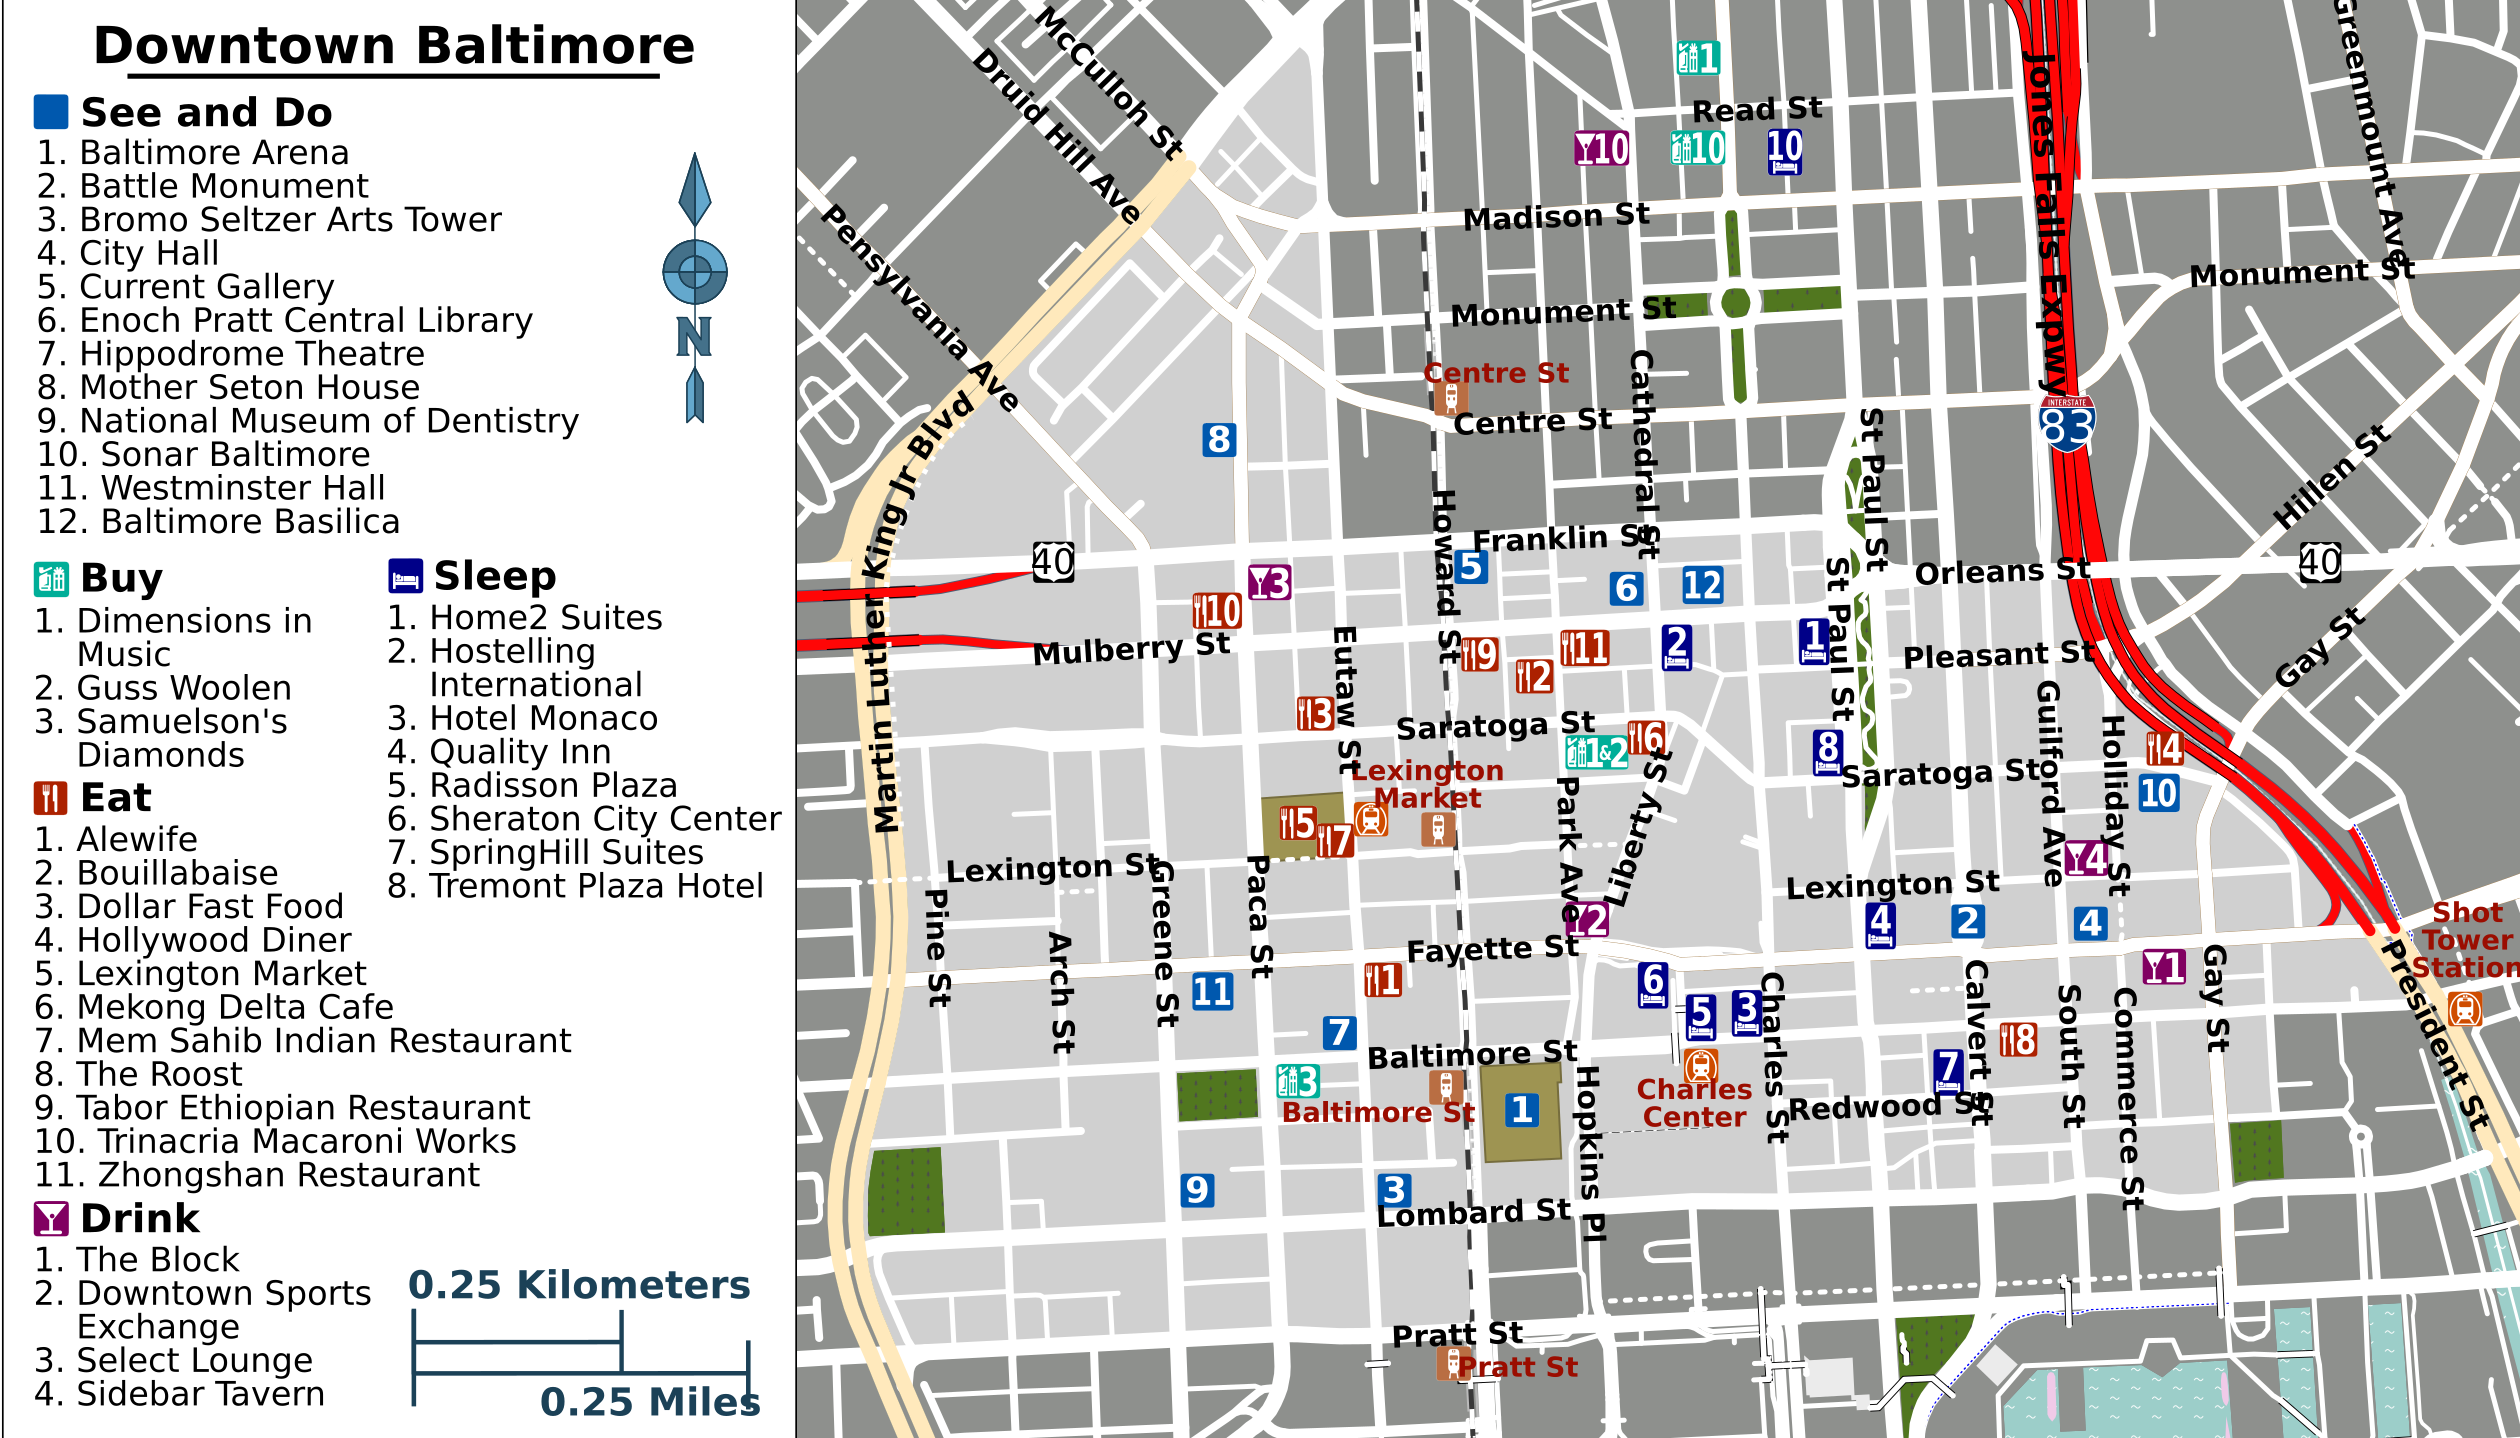 FileDowntown Baltimore mappng Wikimedia Commons